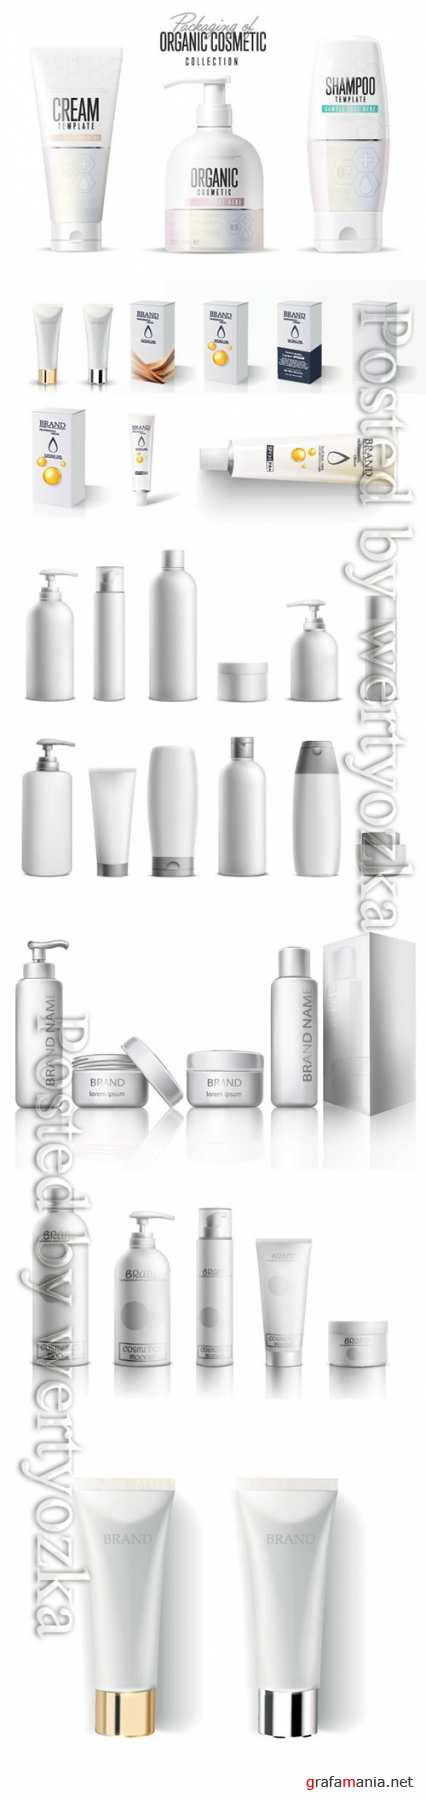 Cosmetic package mockup vector set, beauty product bottles